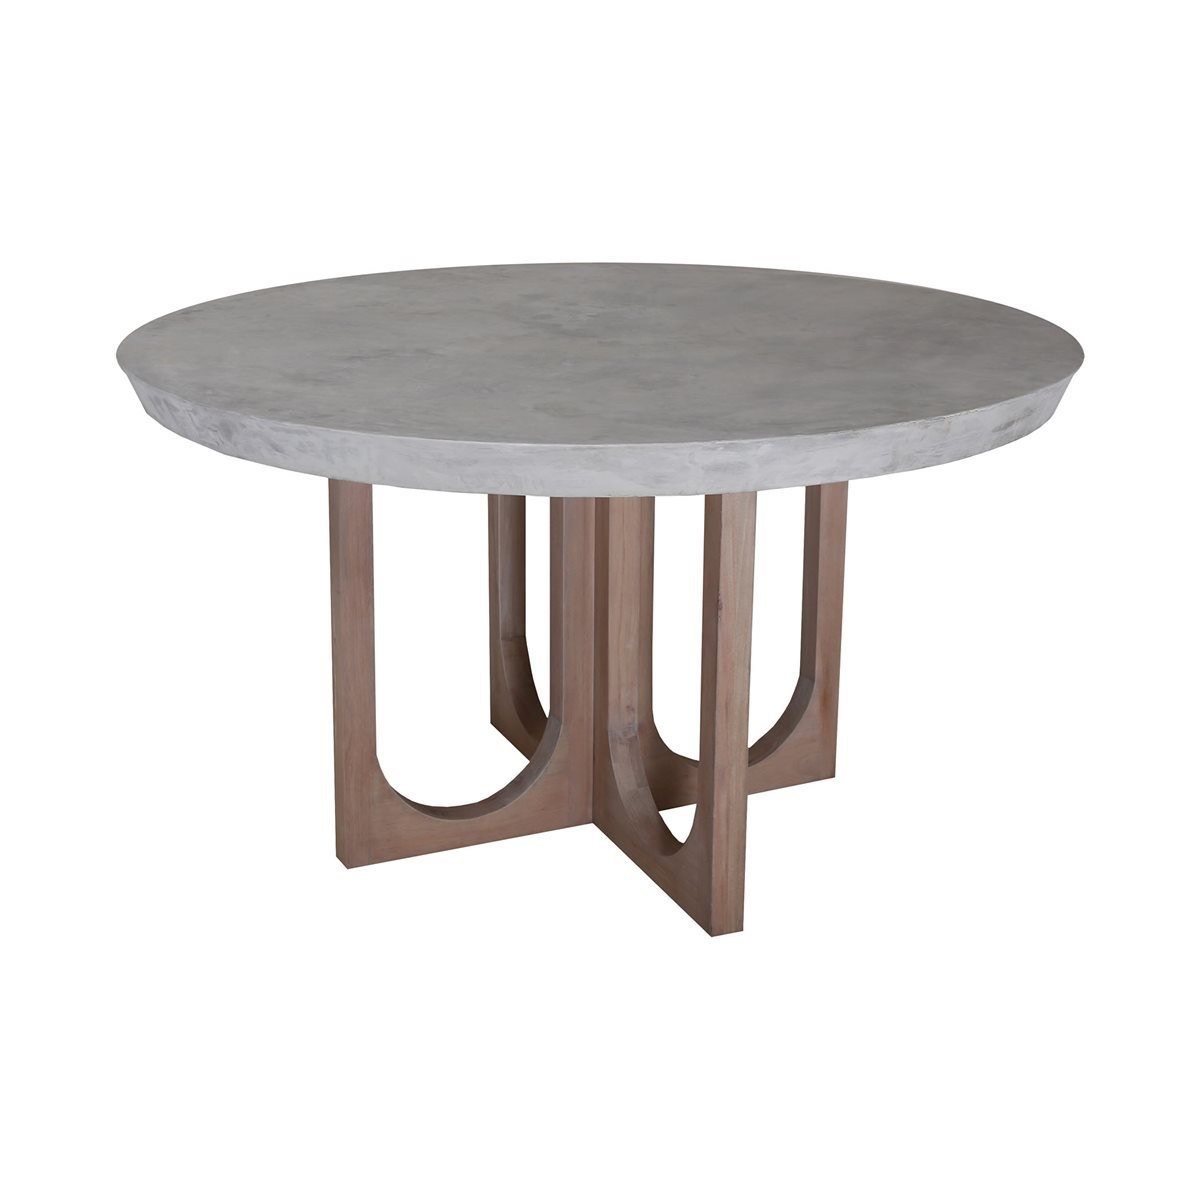 Innwood Round Dining Table 03744